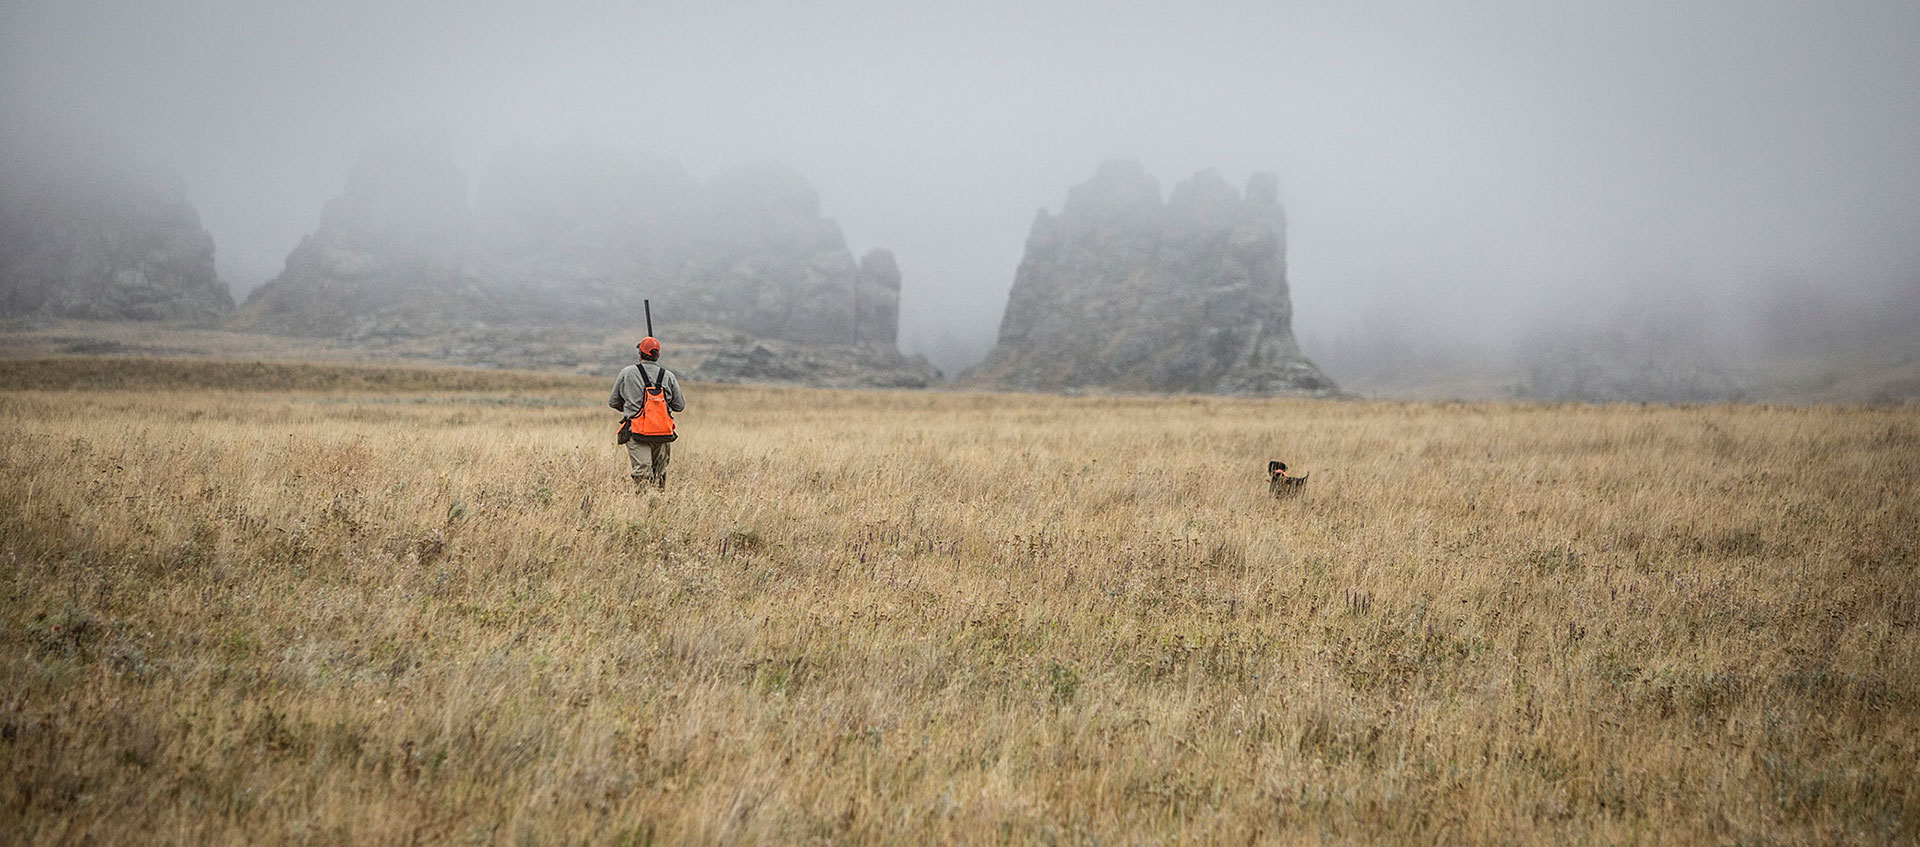 Upland Bird Hunting Outfitter & Guide in Montana